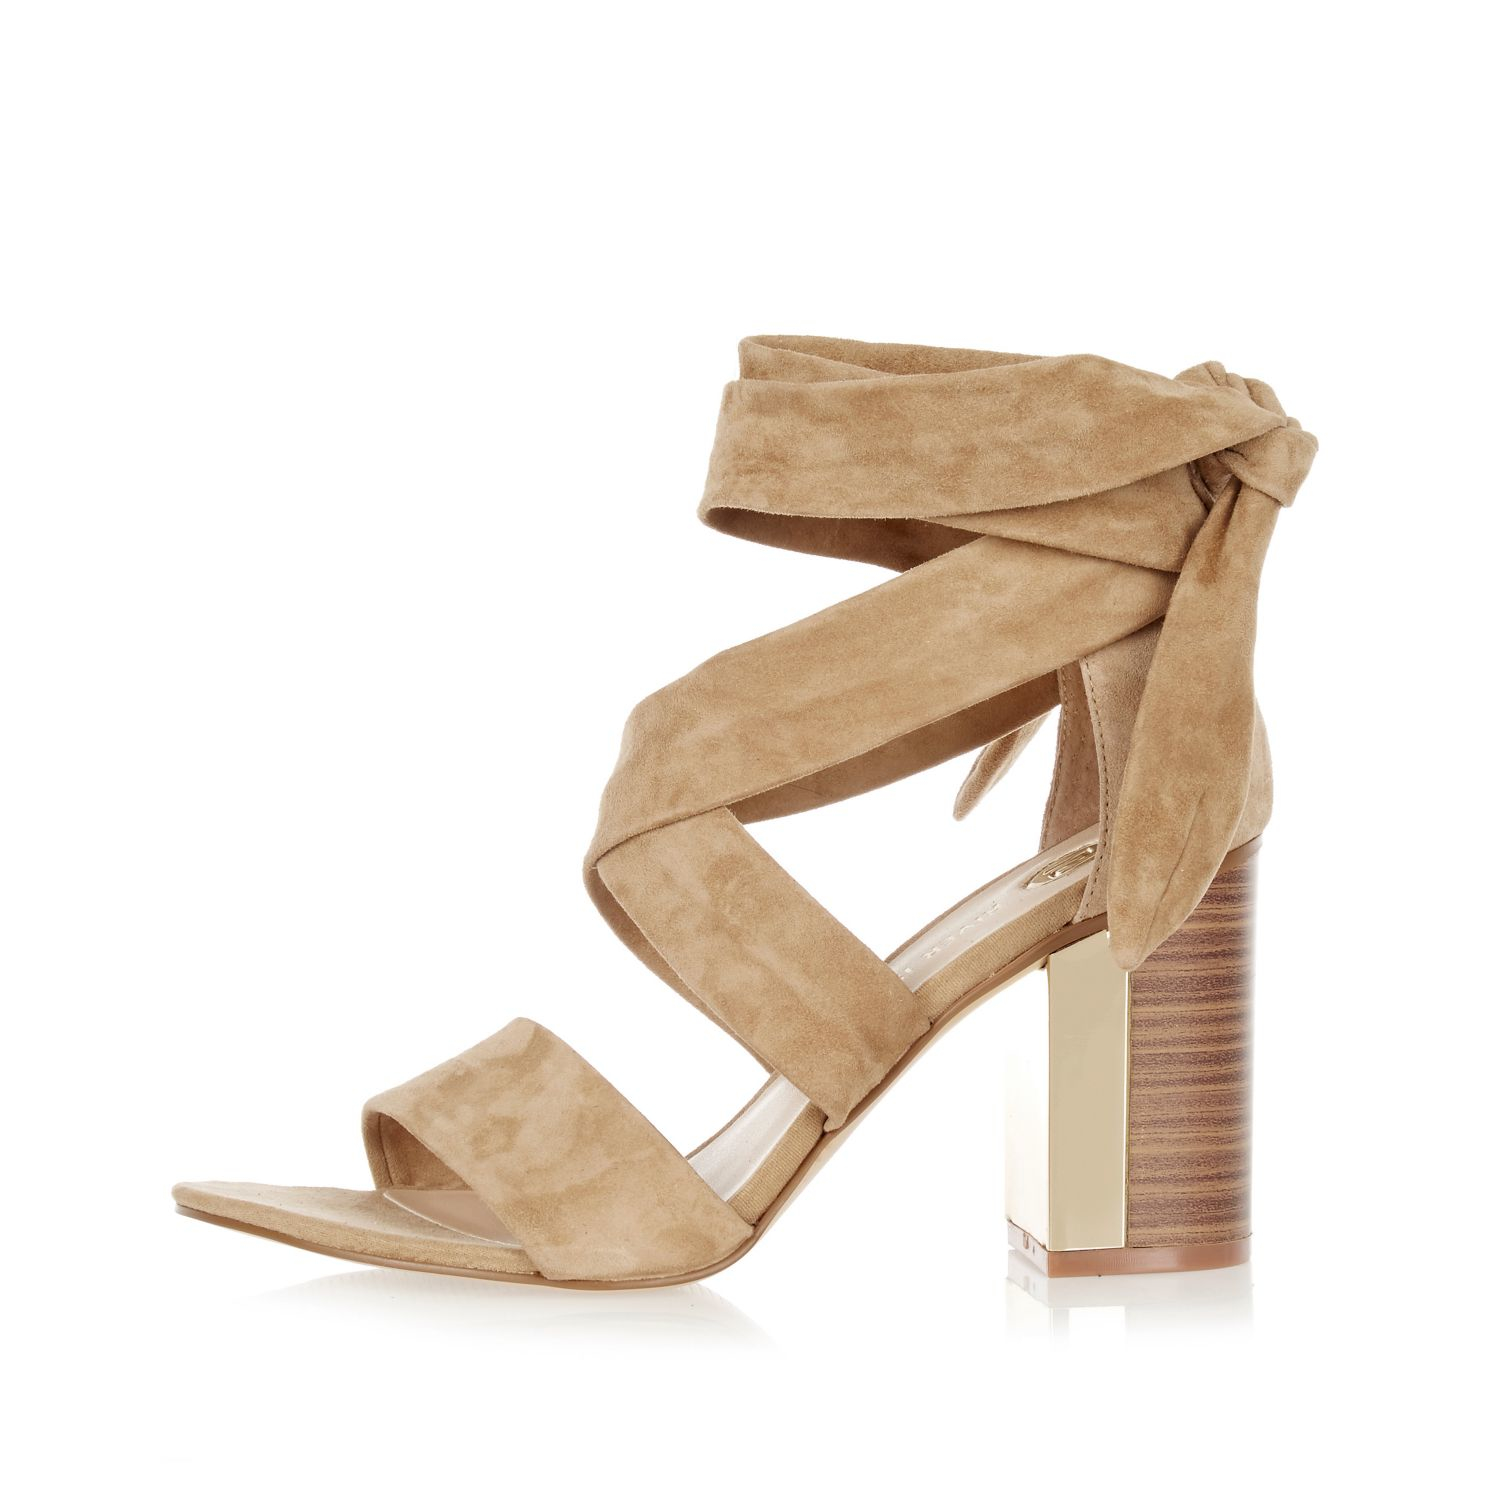 River Island Heeled mules - cream M9M8orGI